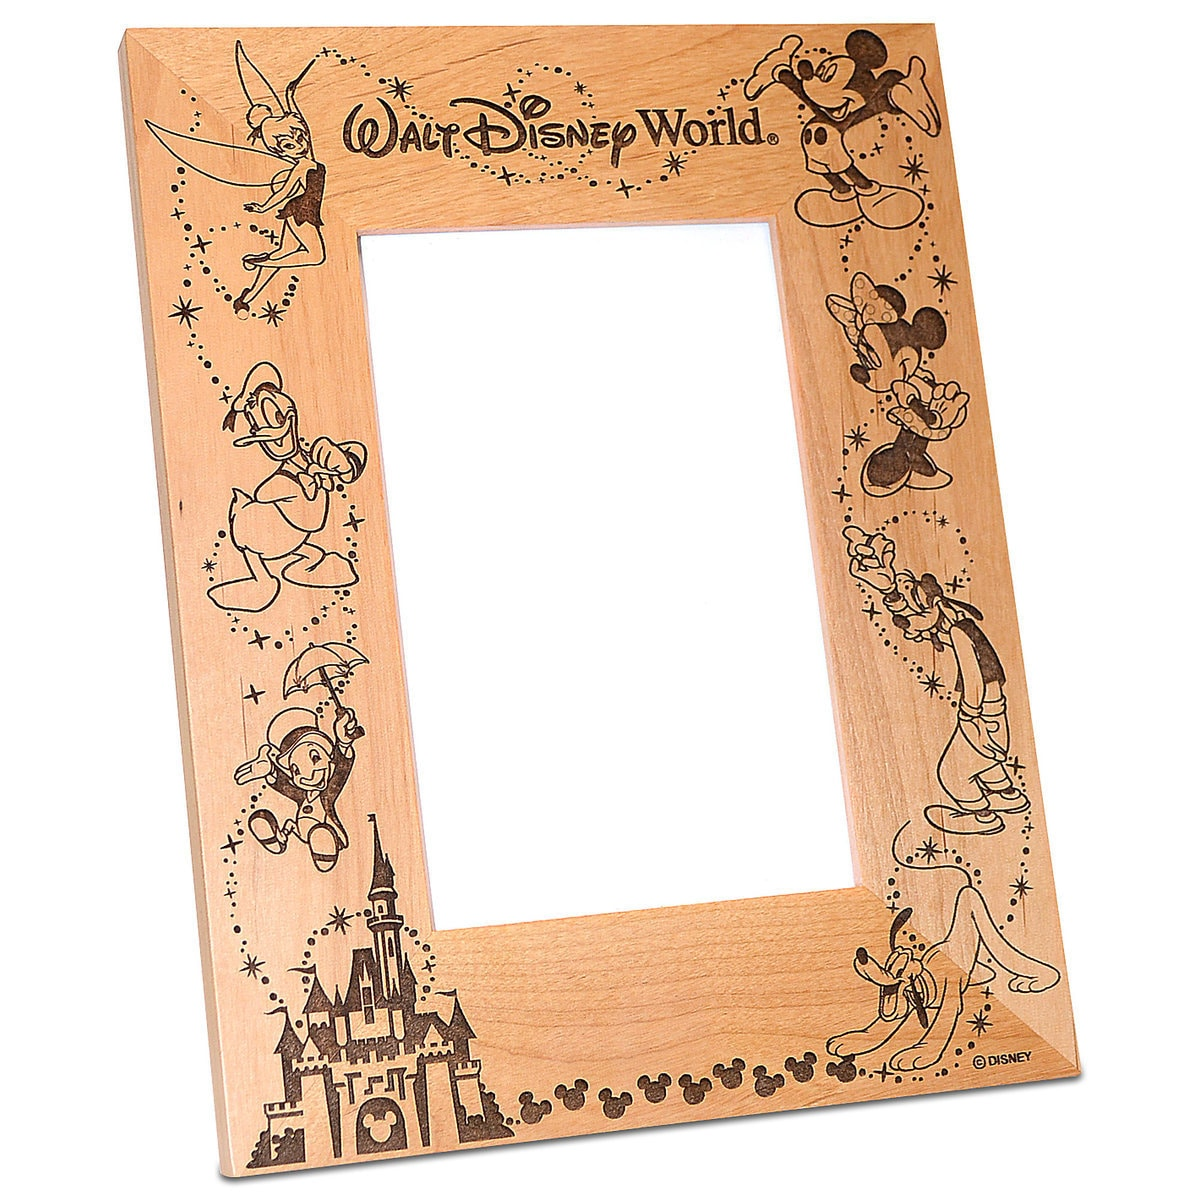 walt disney world cinderella castle photo frame by arribas personalizable - Disney Picture Frames